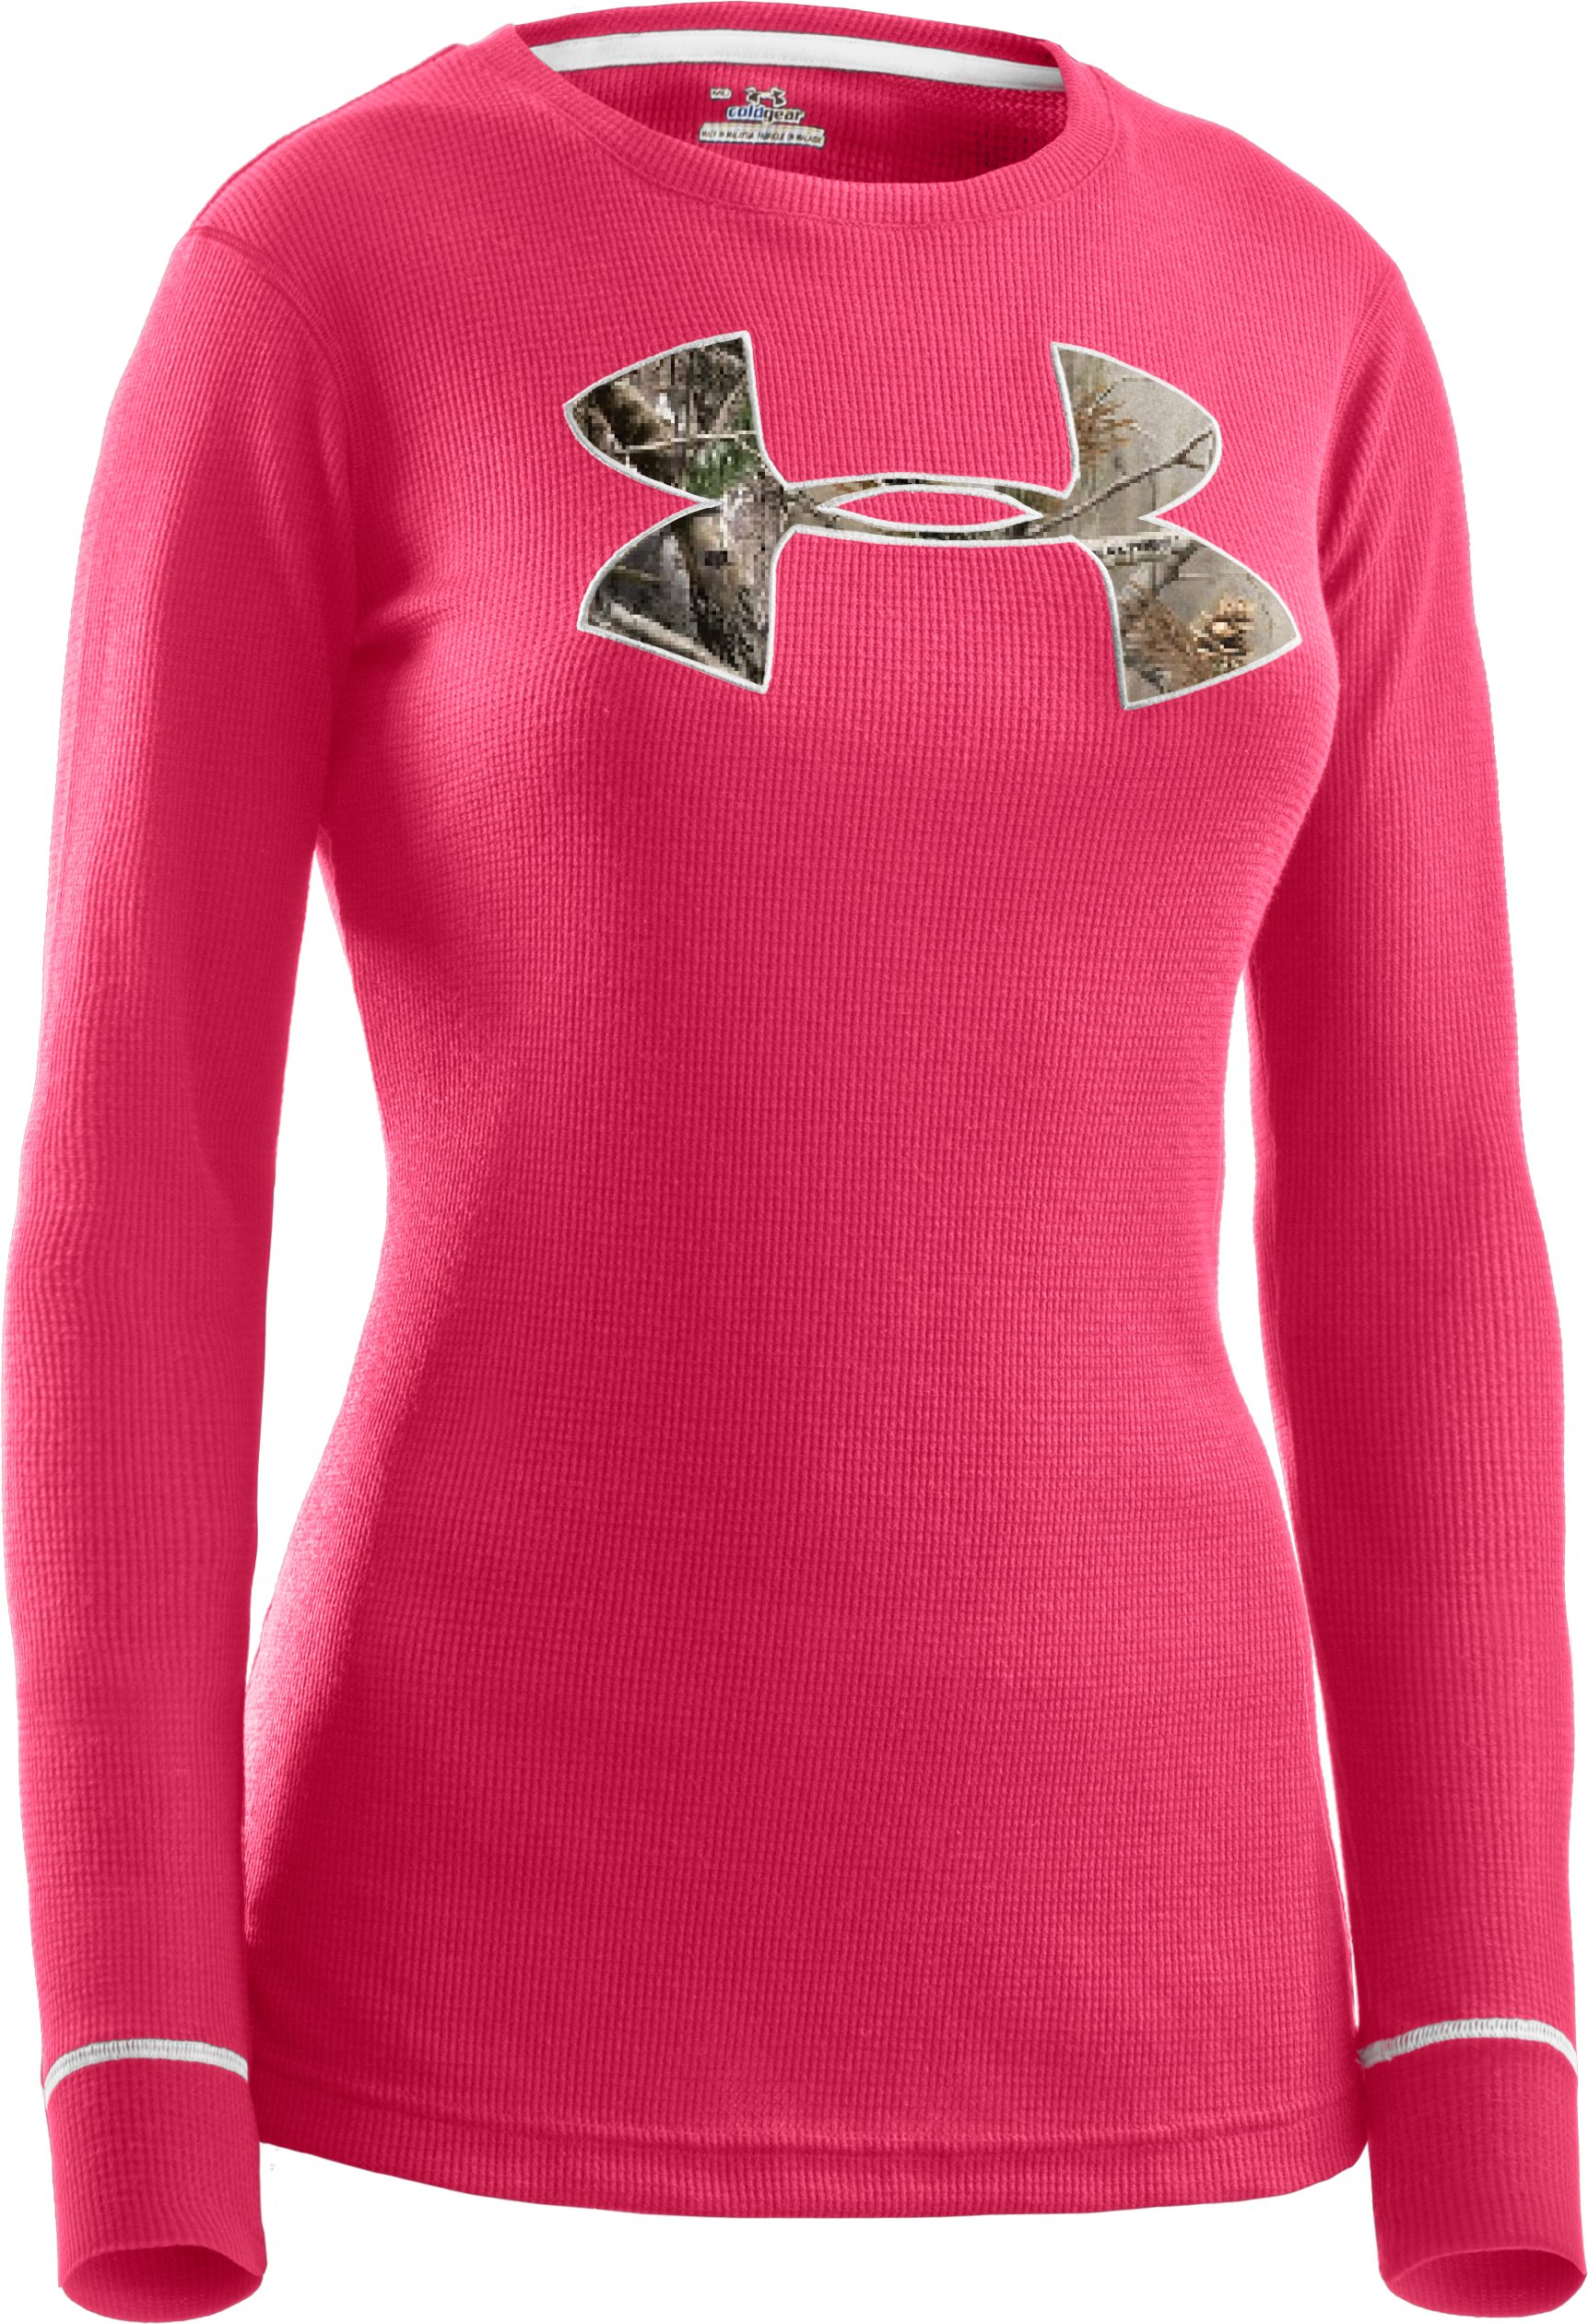 Women's Waffle Tackle Twill Long Sleeve Crew, Perfection,